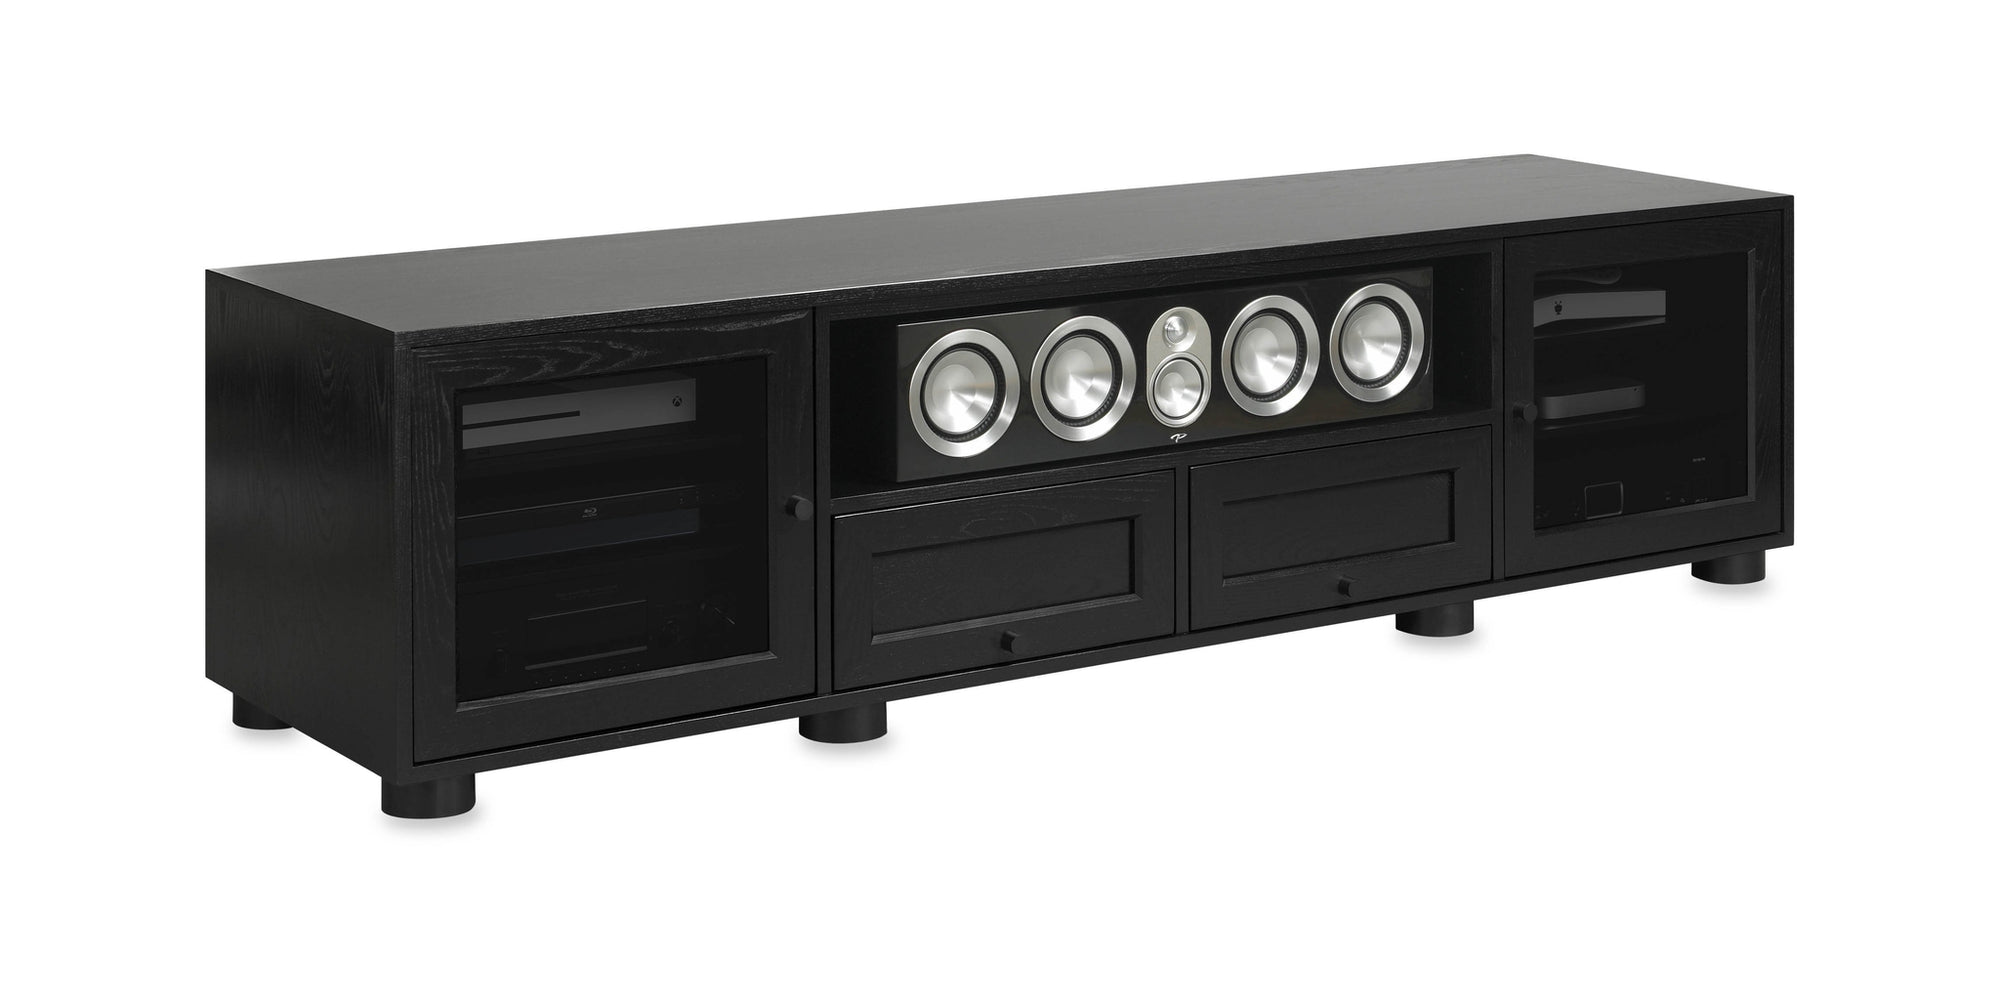 Majestic Ex 82 In American Solid Wood Media Console Tv